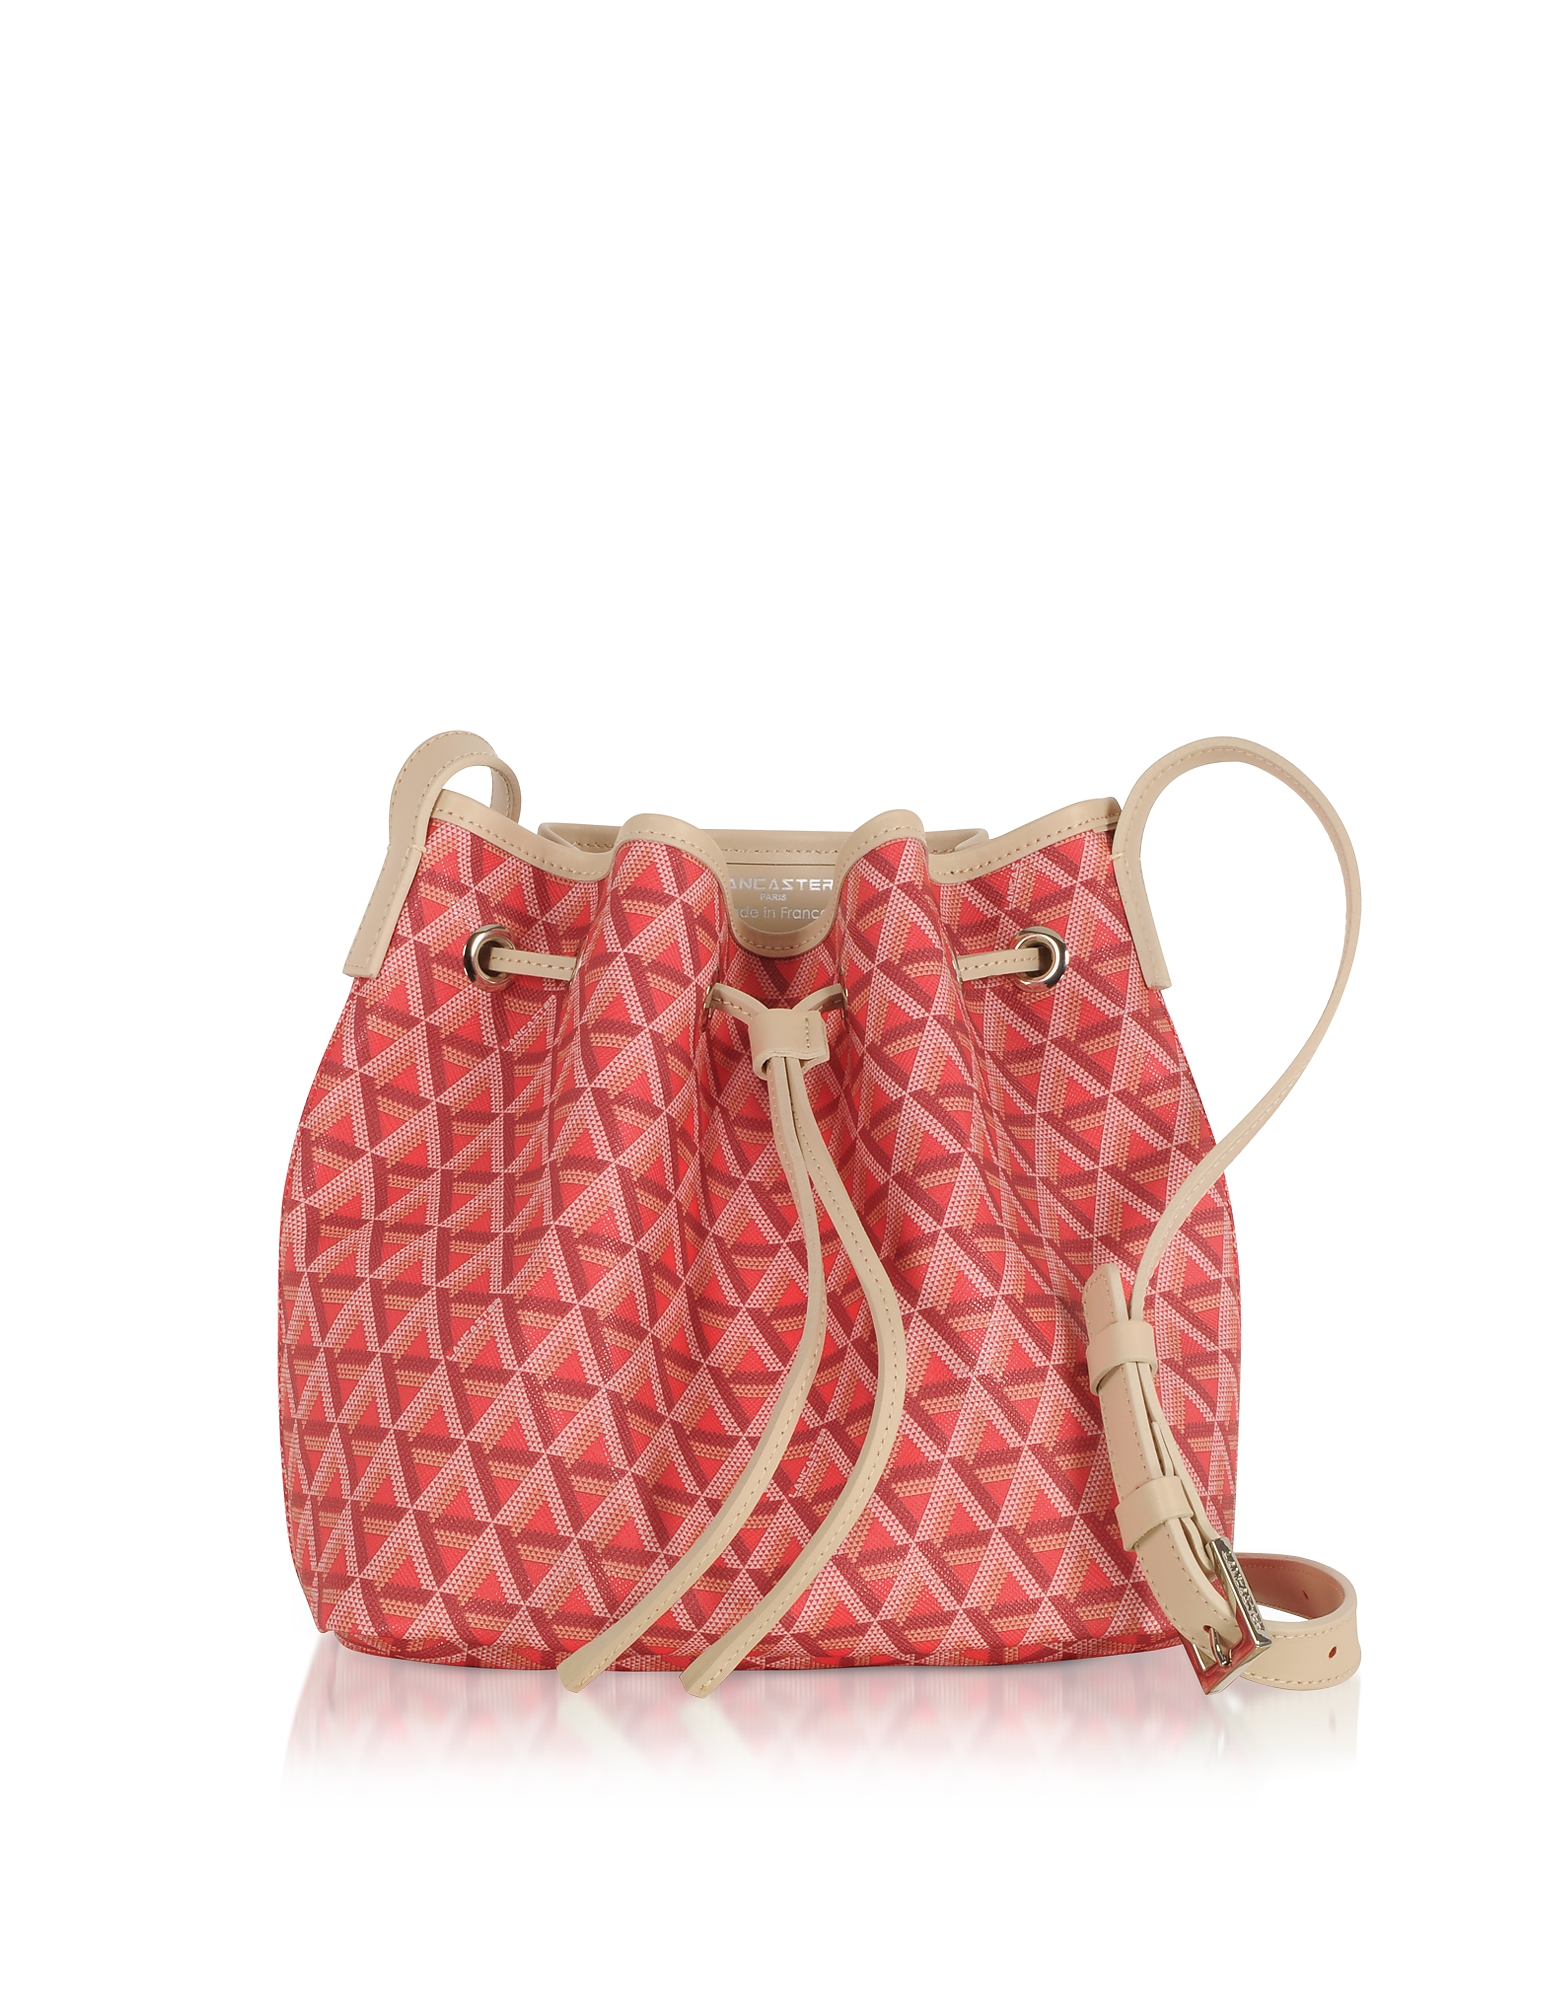 Lancaster Paris Handbags, Ikon Small Bucket Bag